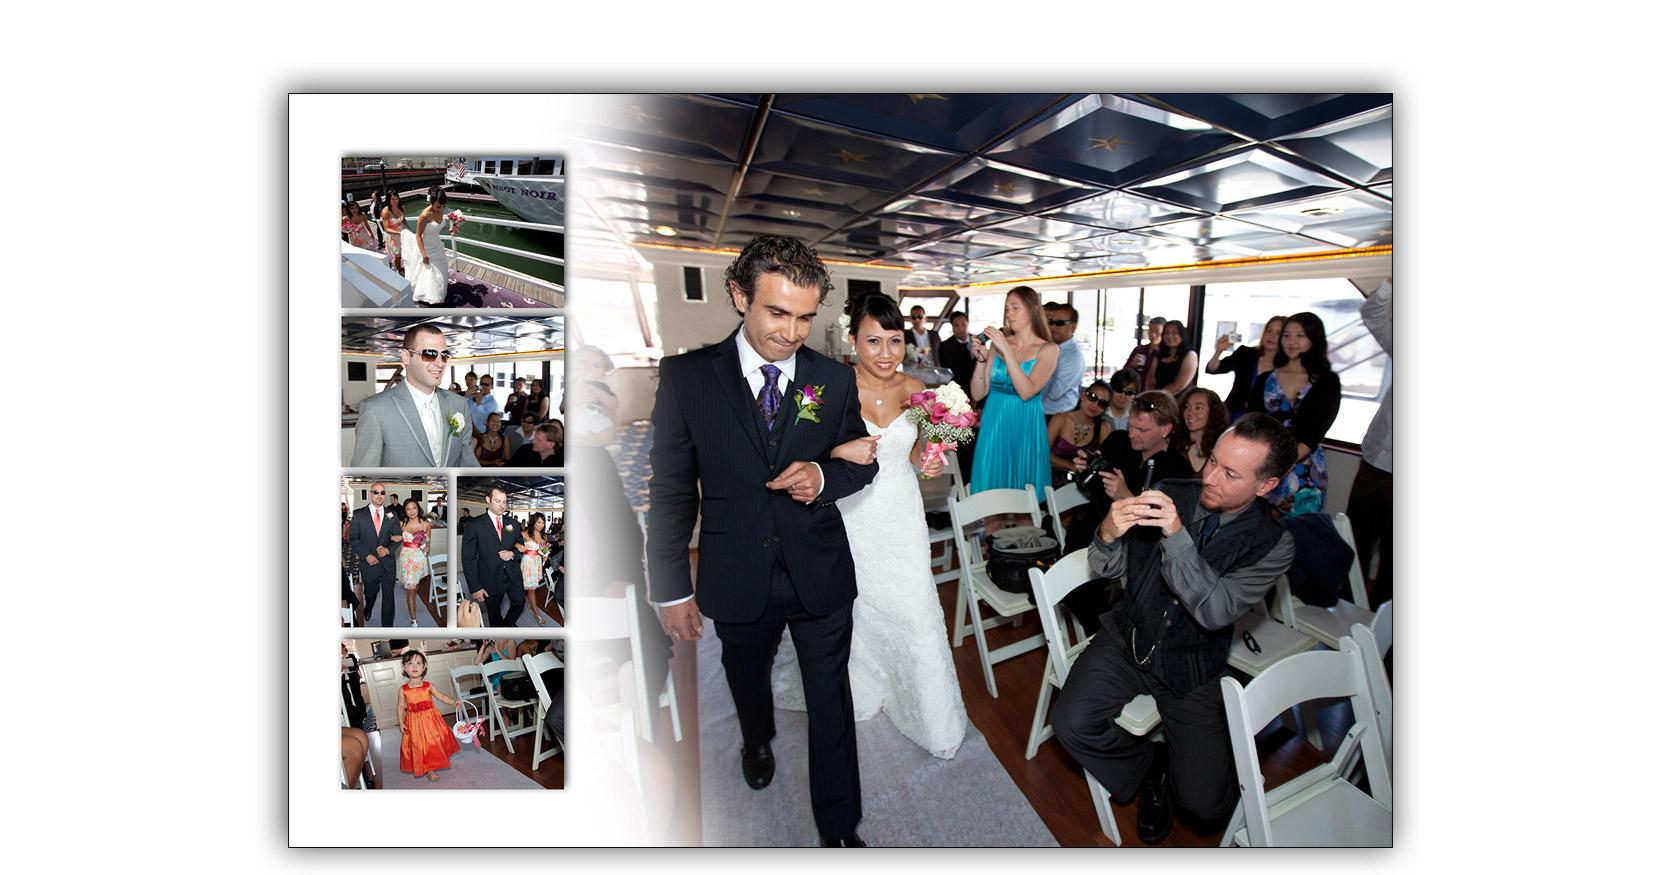 San Francisco Bay yacht boat wedding cruise Commodore Events Merlot photography album 05